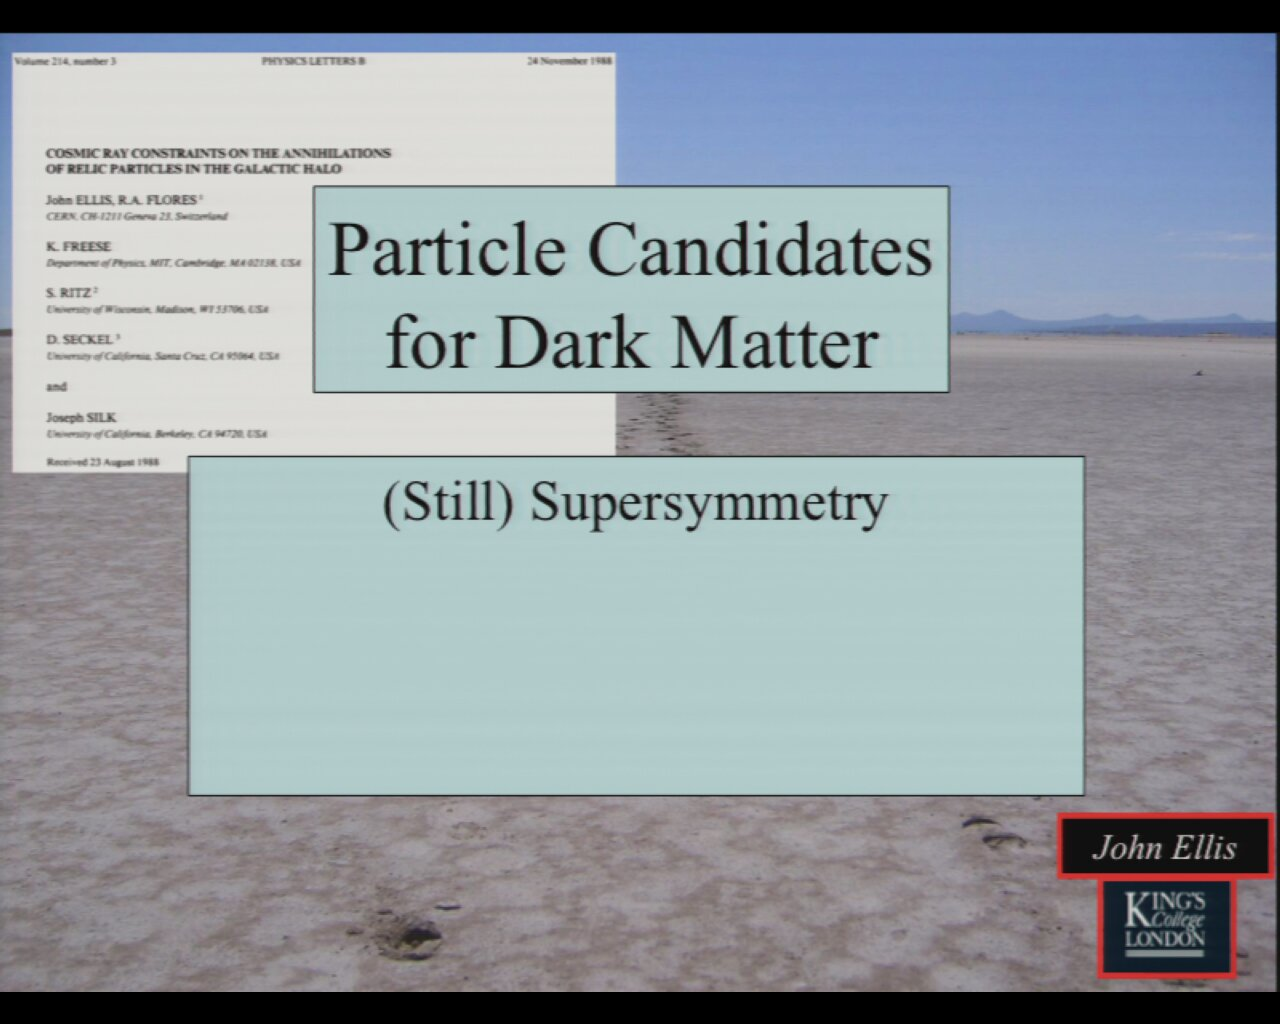 Particle Candidates for Dark Matter